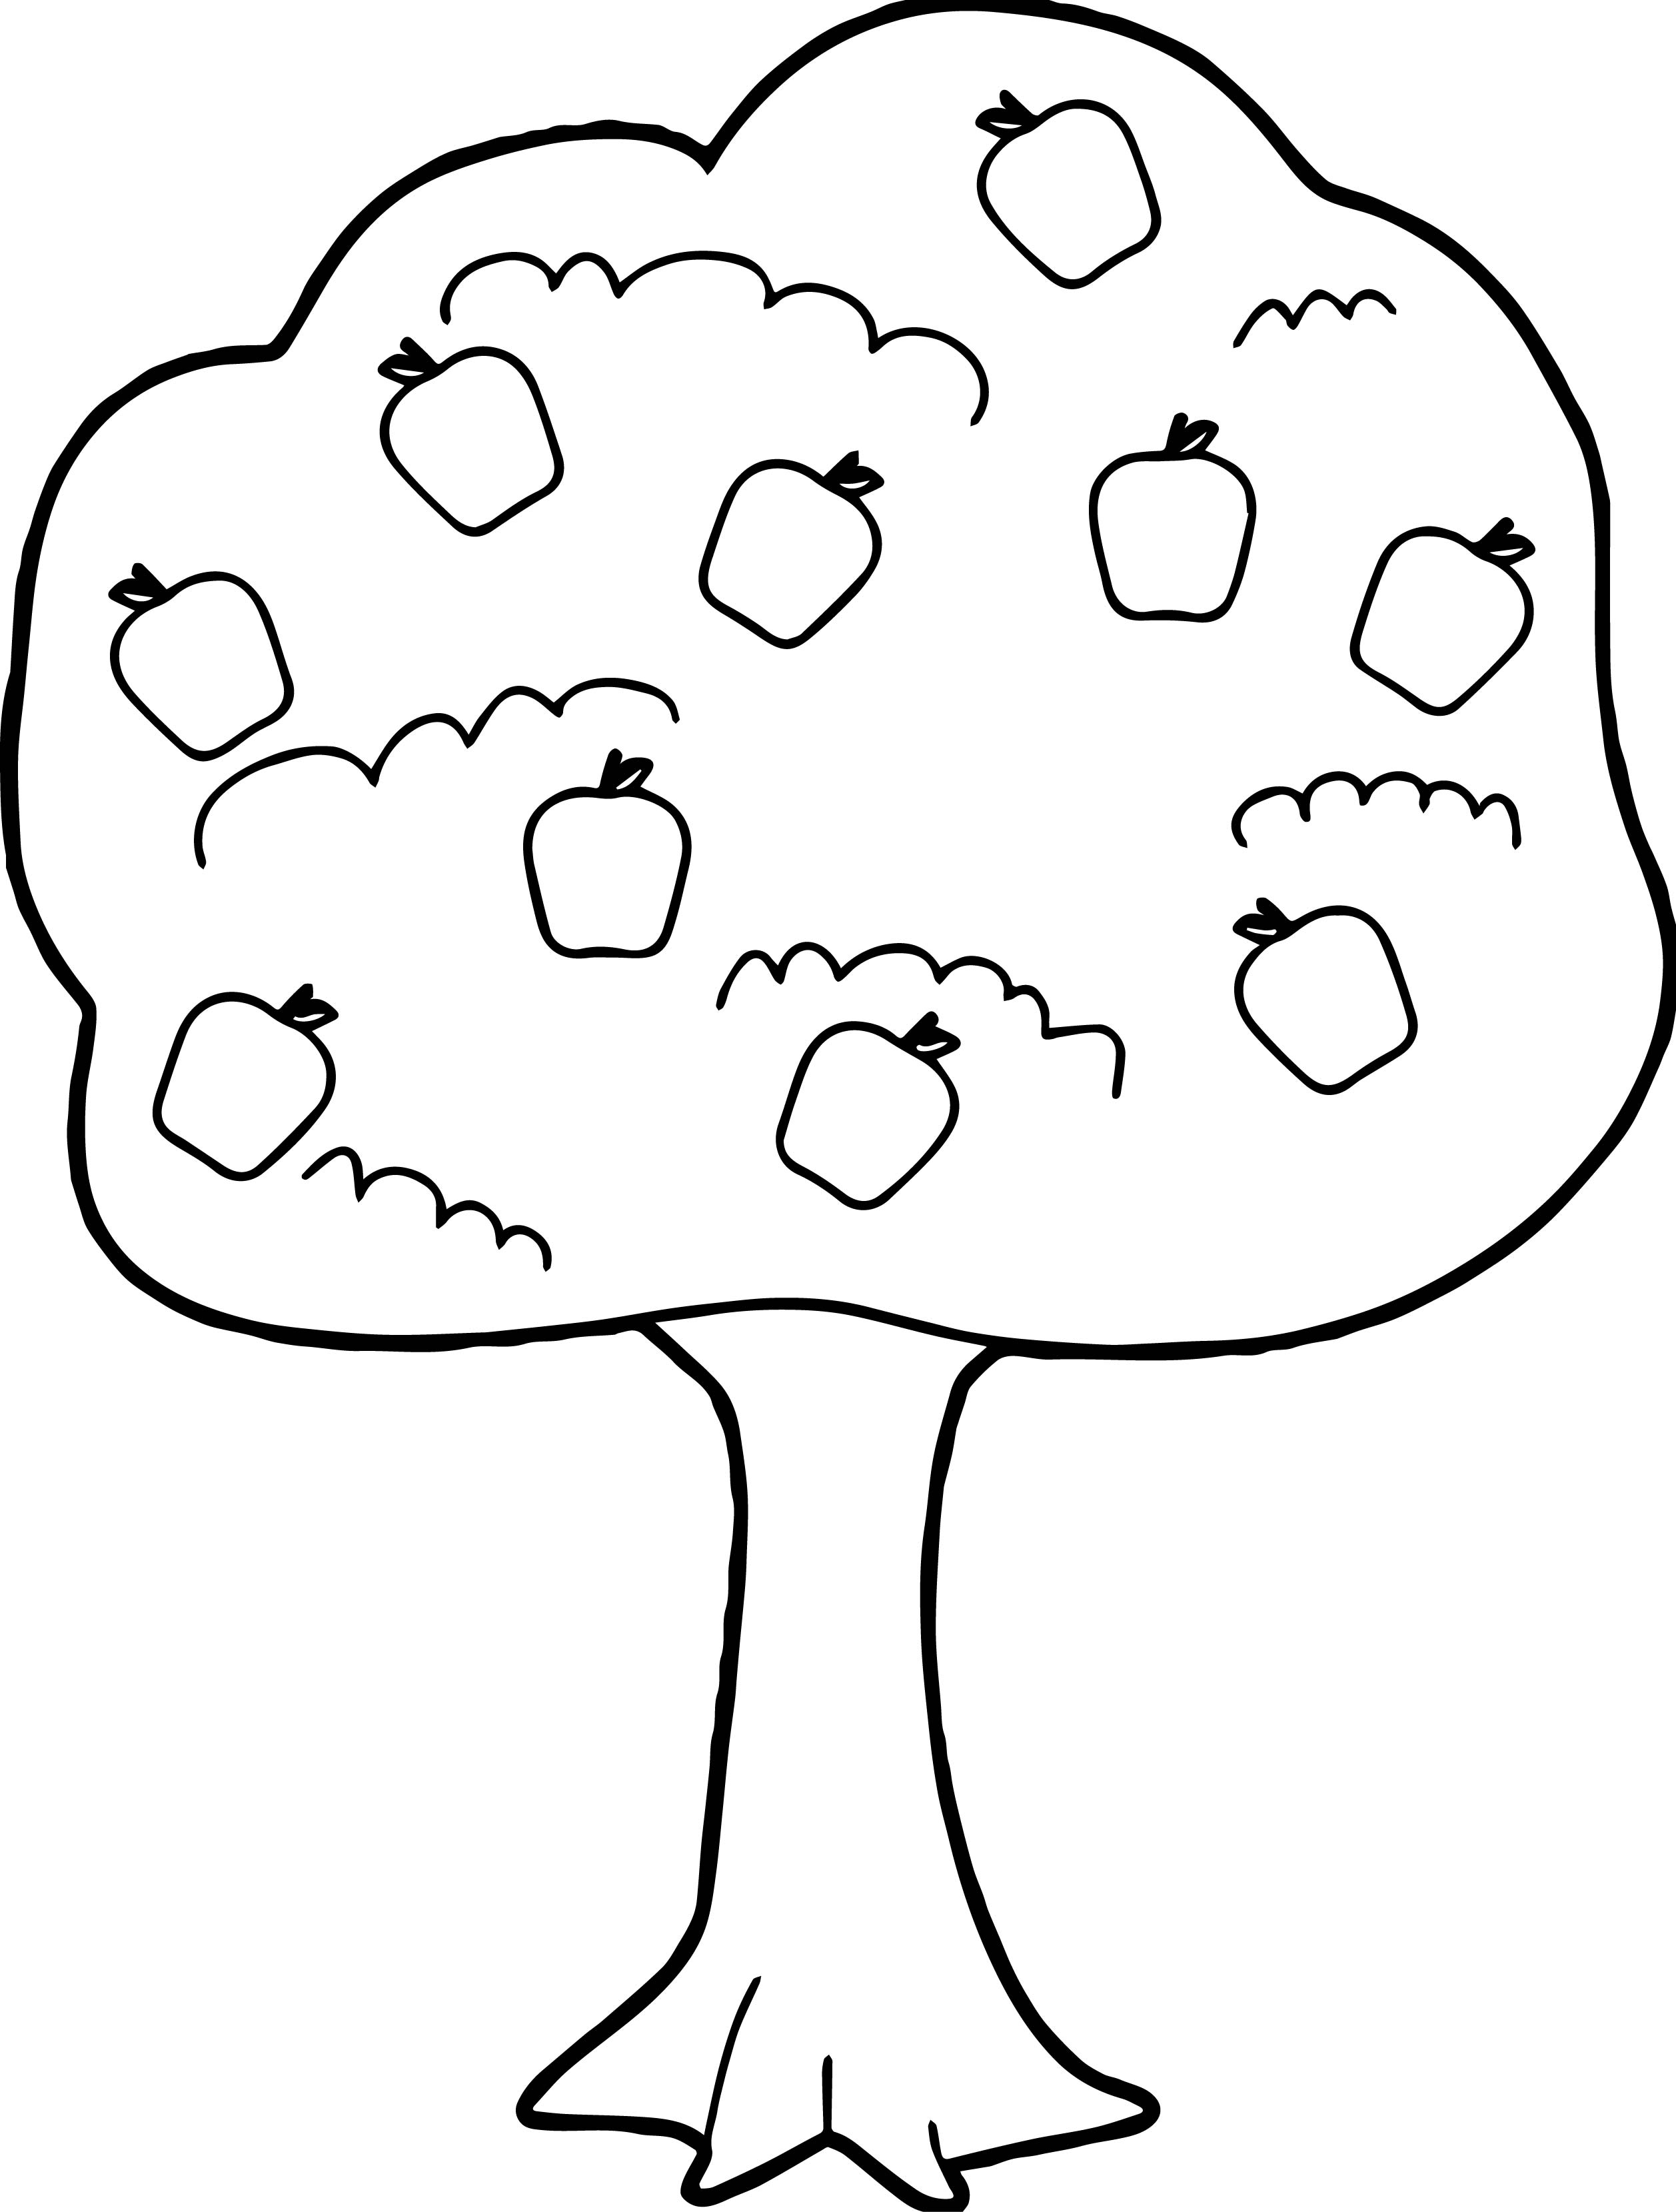 cute apple tree coloring page - Apple Tree Coloring Page